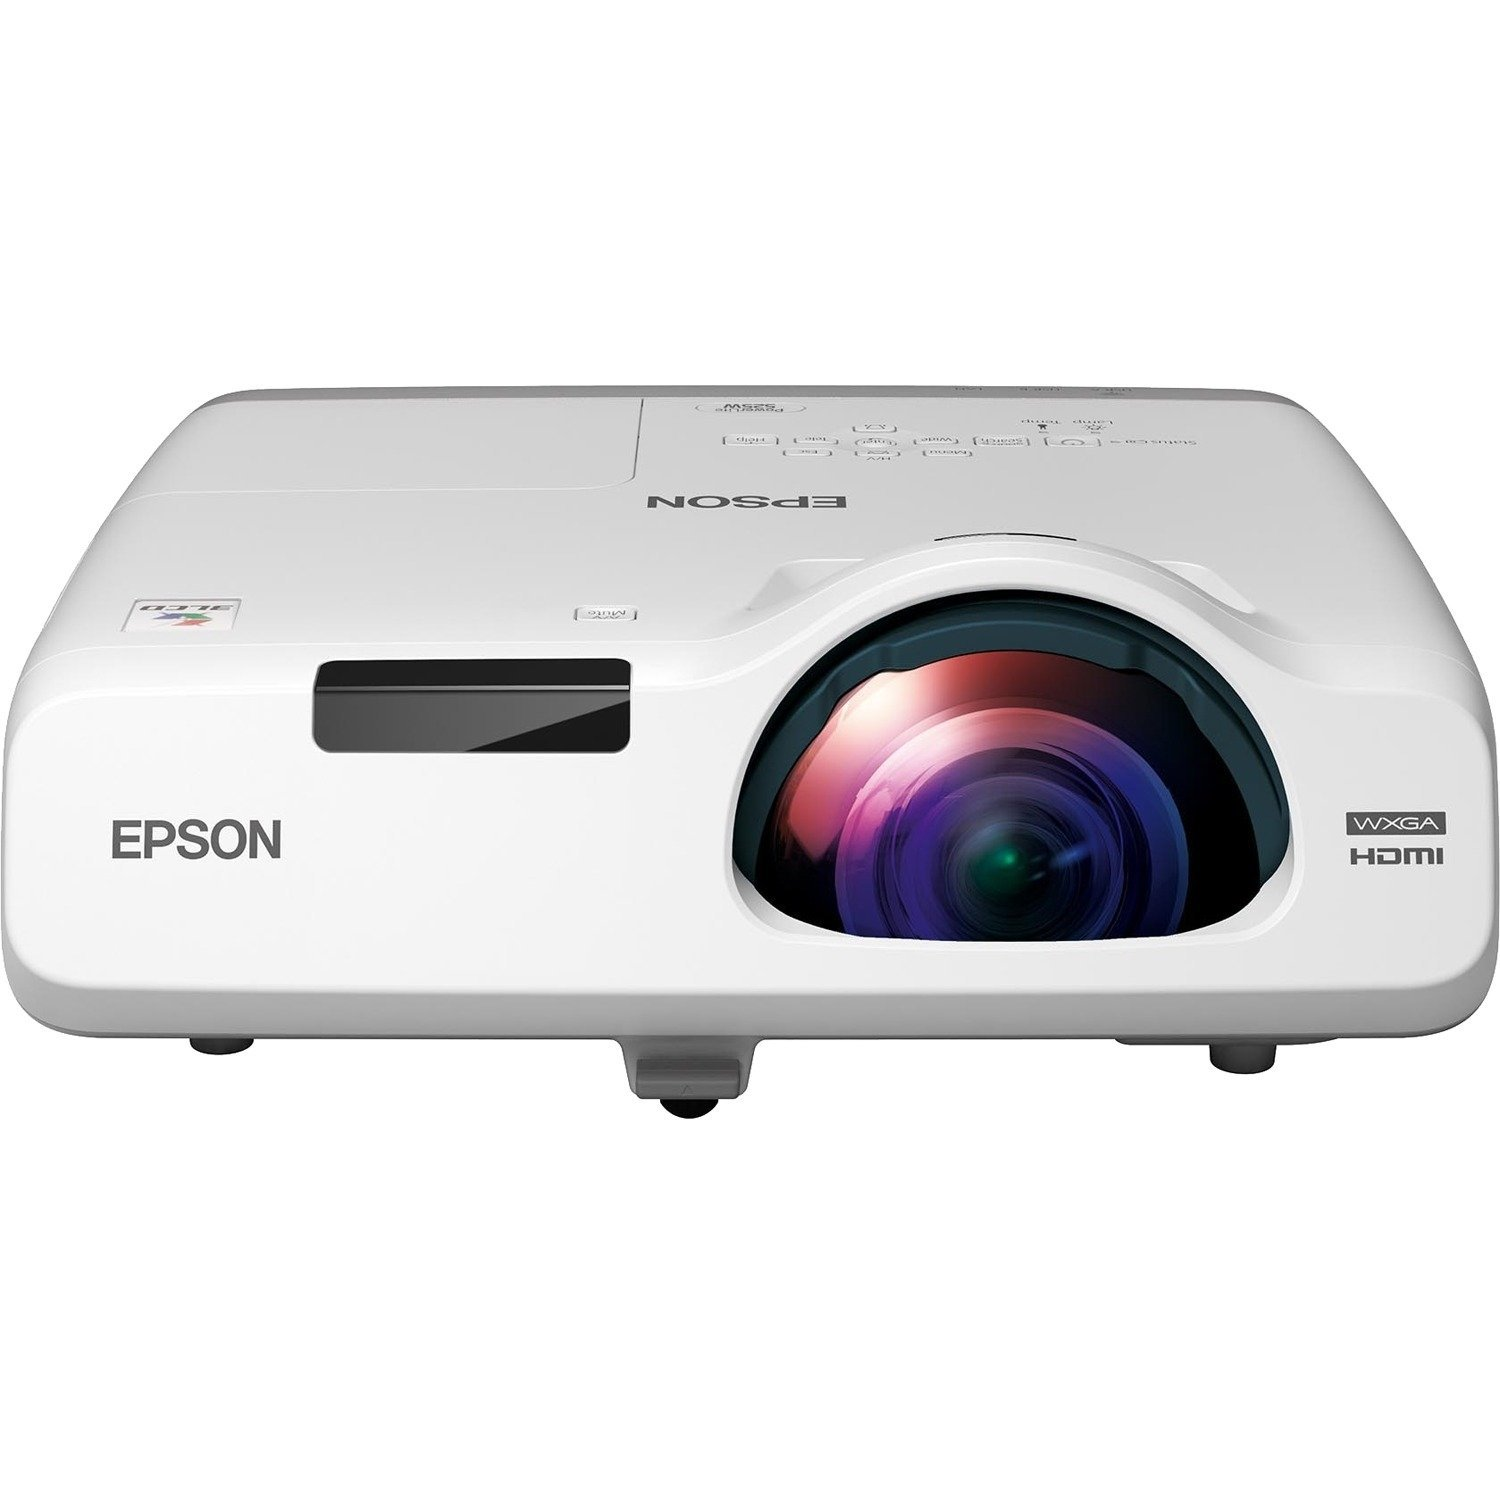 Epson PowerLite 525W - LCD projector - 2800 lumens - WXGA (1280 x 800) - 16:10 - HD - short-throw fixed lens - LAN - Epson Brighter Futures Education Program with 2 years Epson Road Service B00PELAD4S